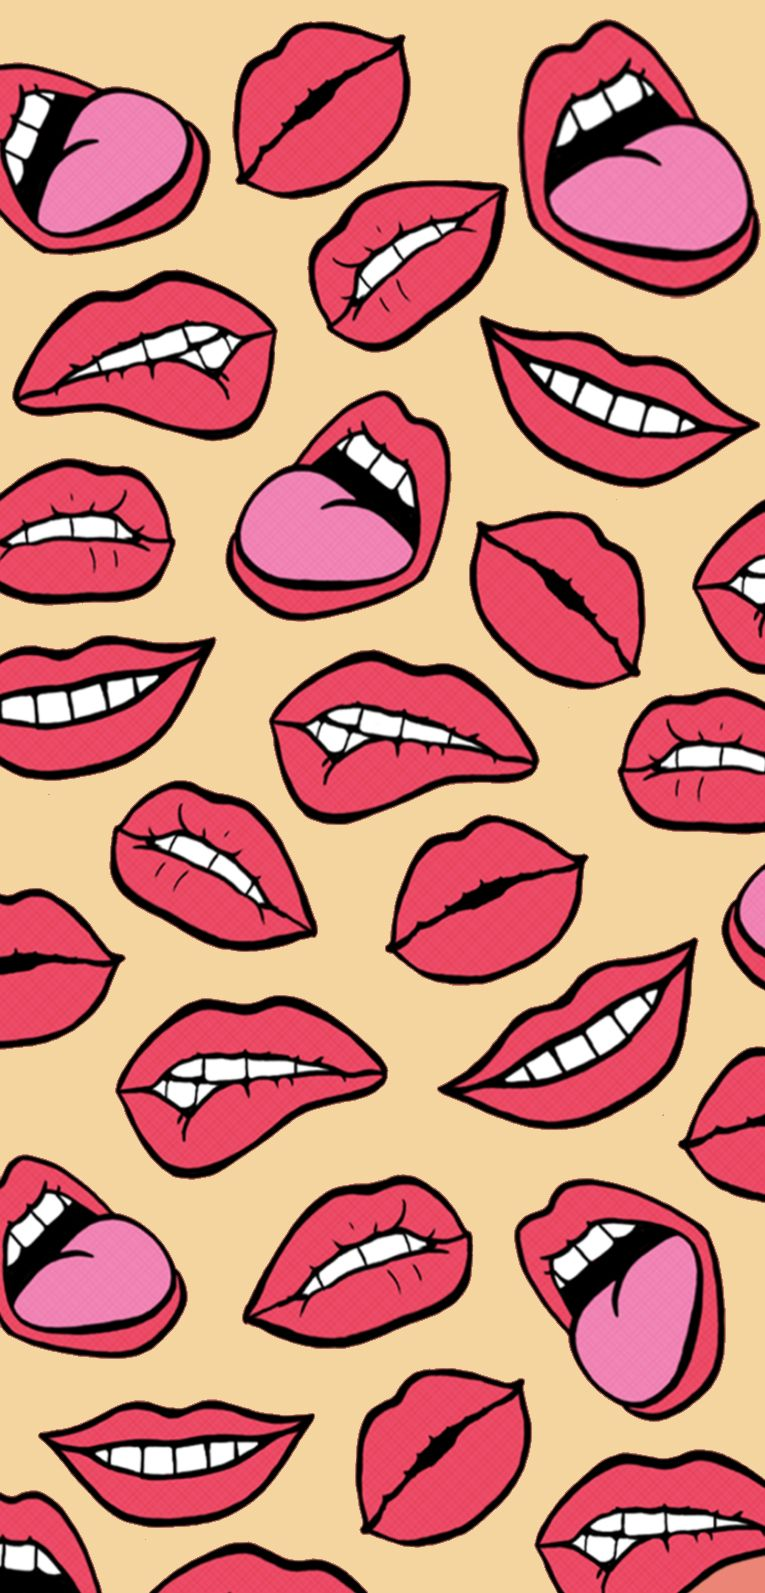 Gocase Lovegocase Wallpaper Mouths Redlips Cute Disney